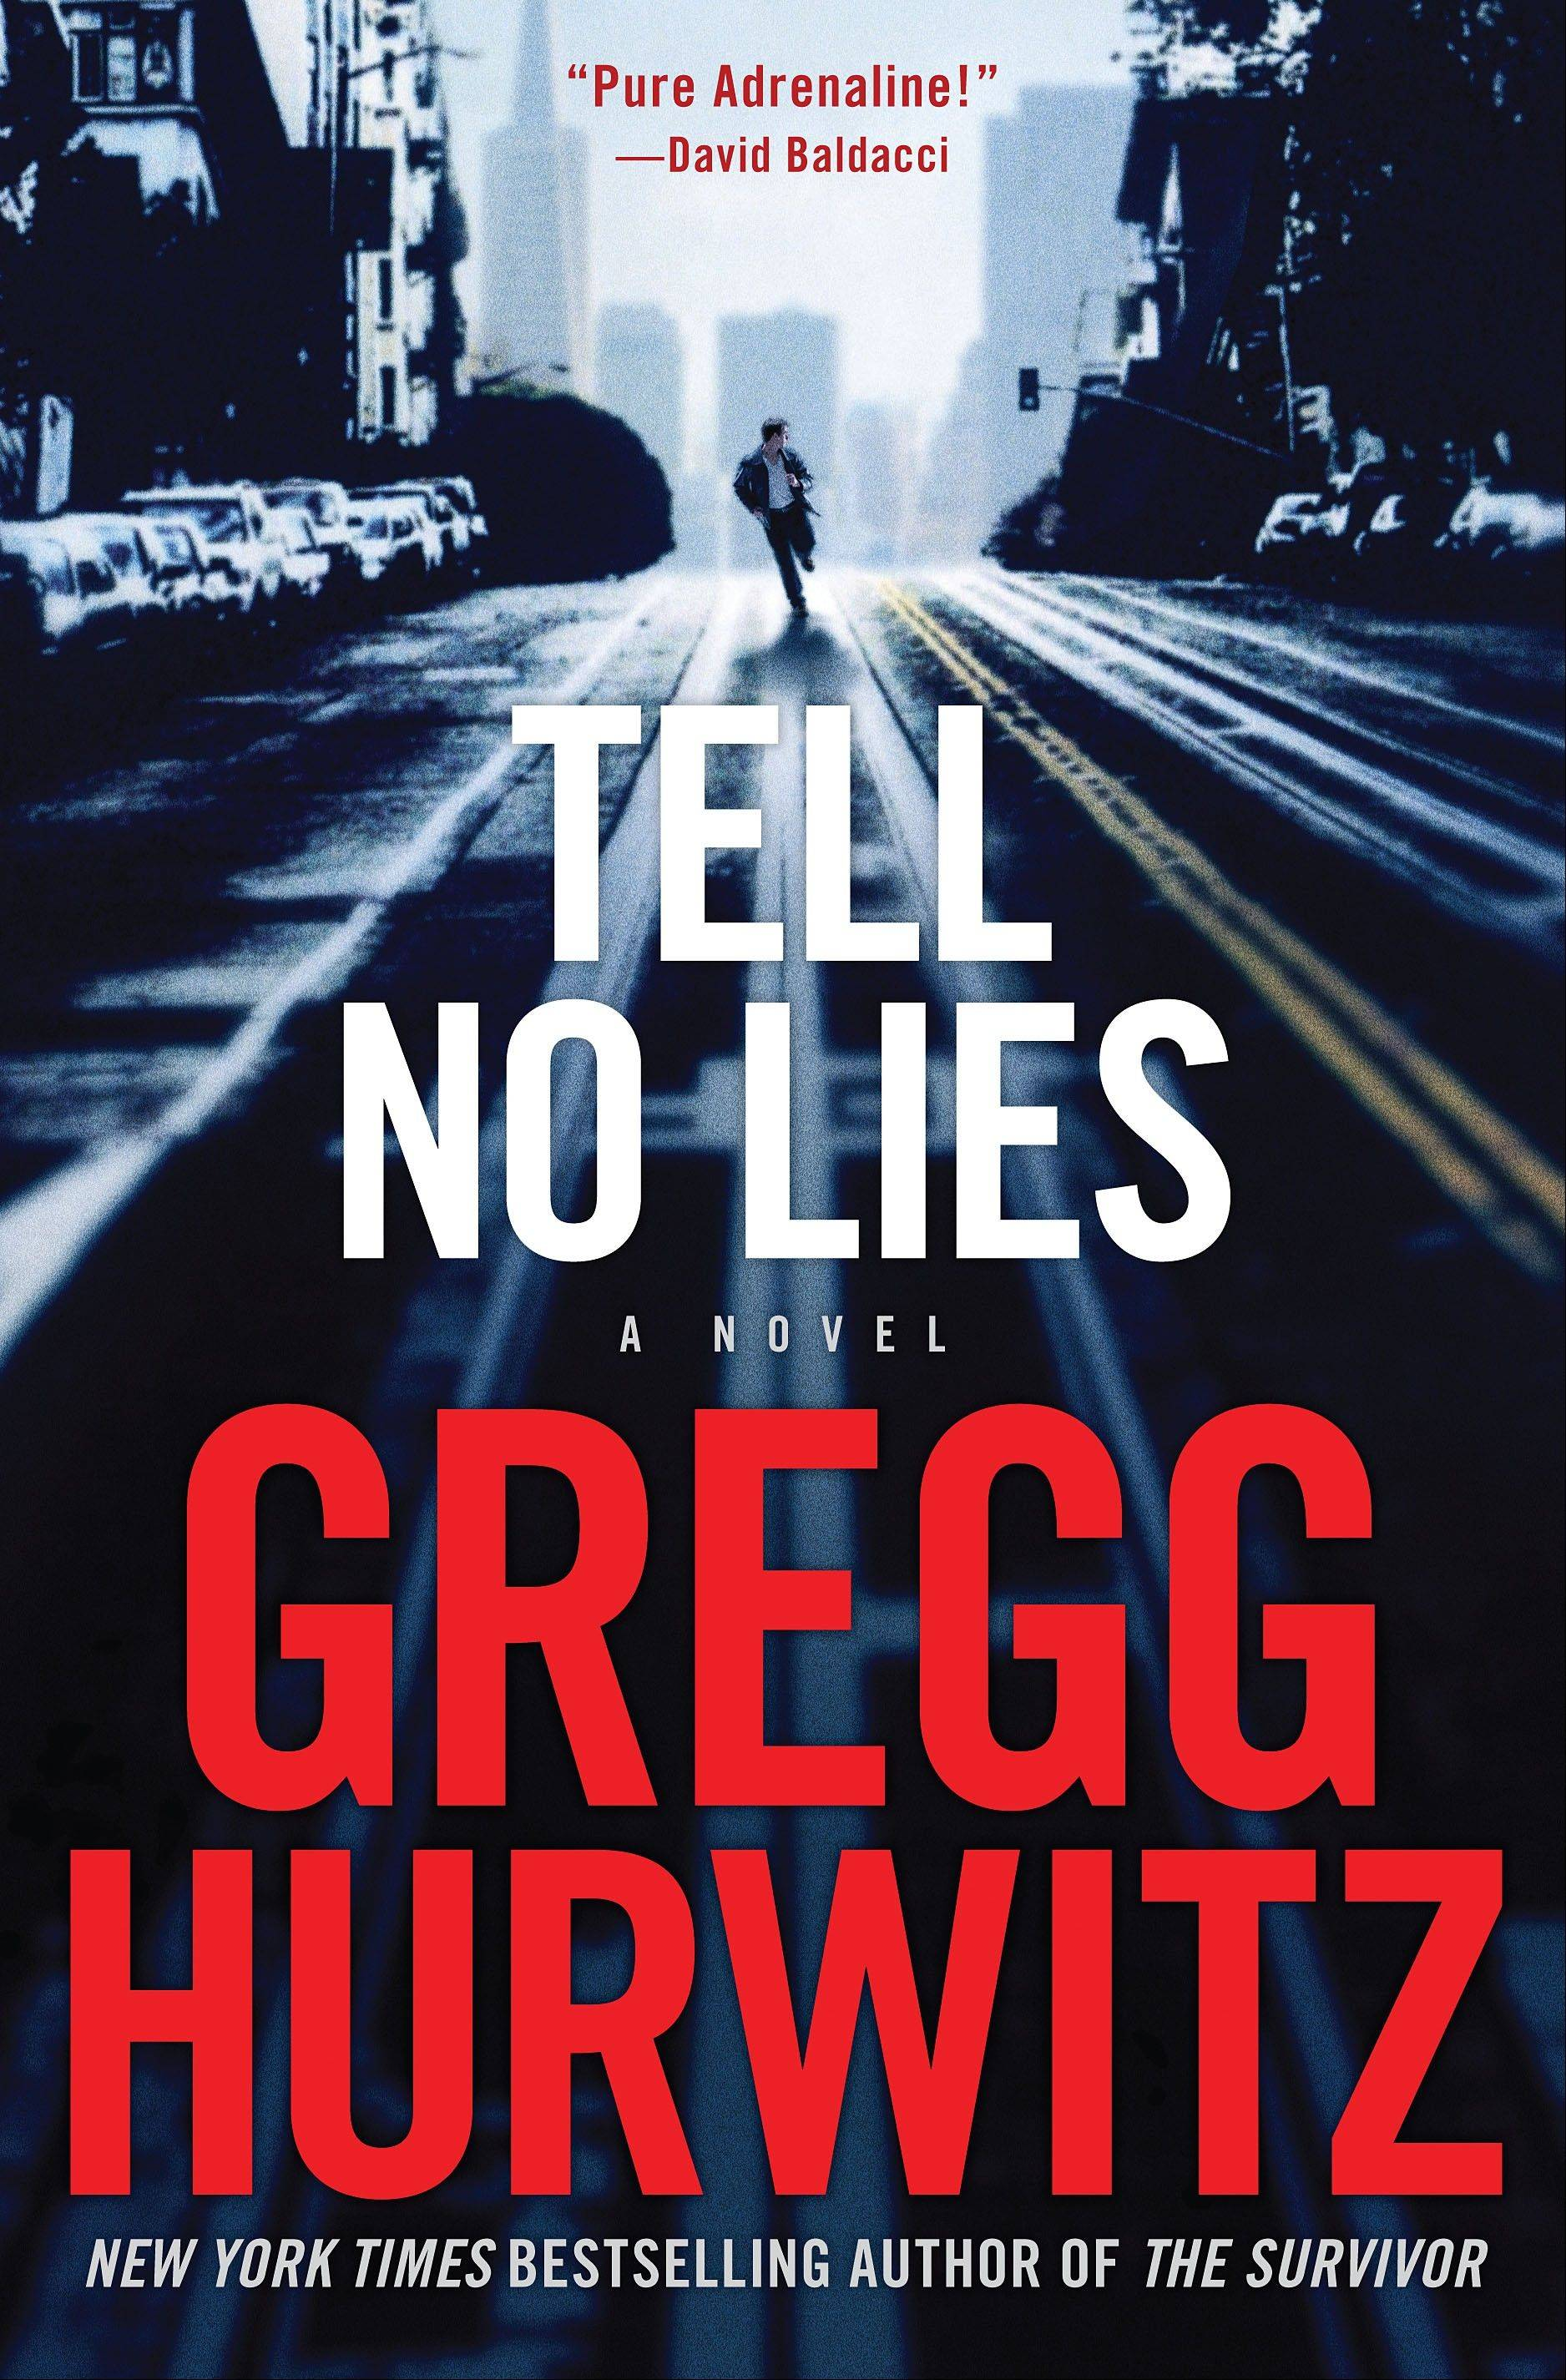 �Tell No Lies� by Gregg Hurwitz